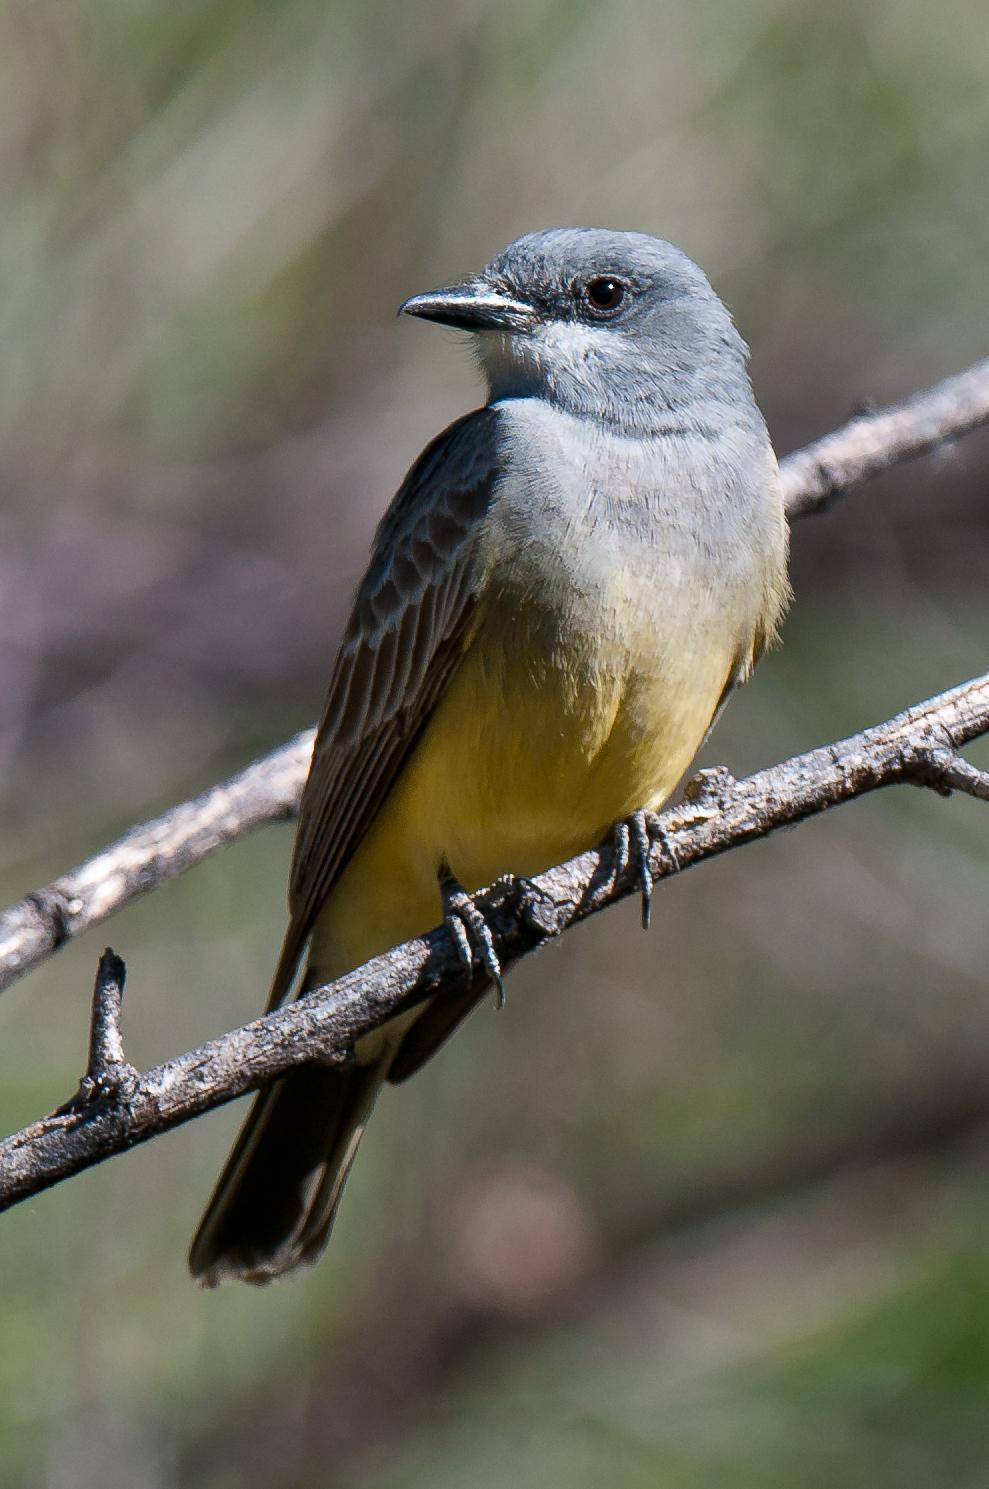 Cassin's Kingbird Photo by Mason Rose